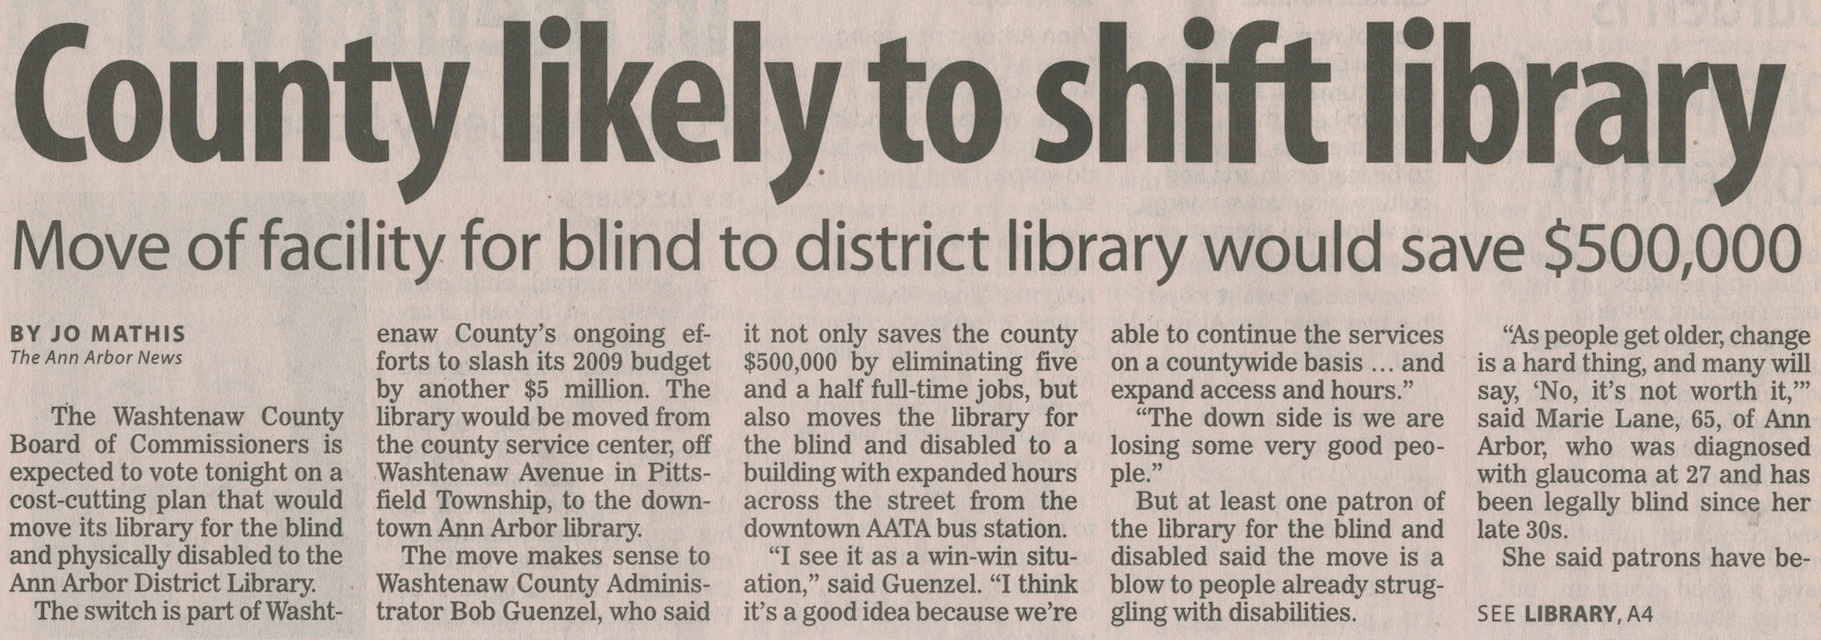 County Likely To Shift Library image